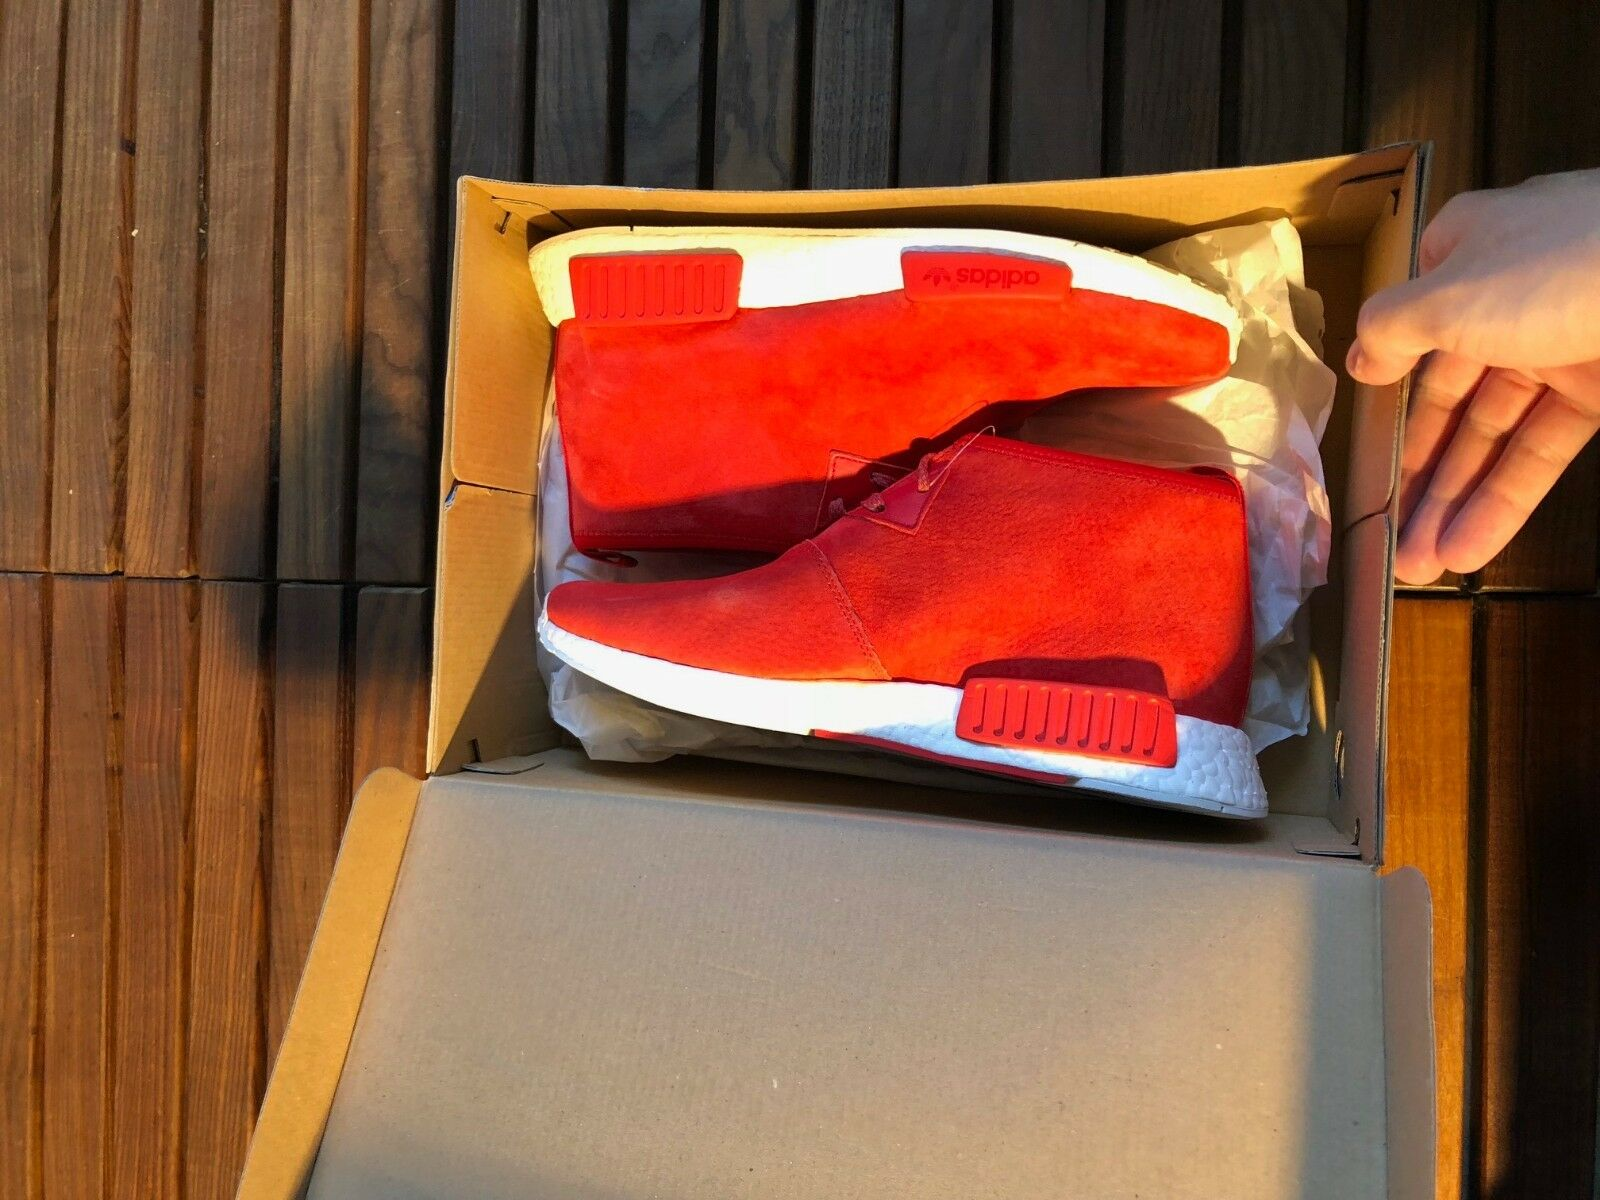 Adidas NMD Chukka Red Sneakers Size 40